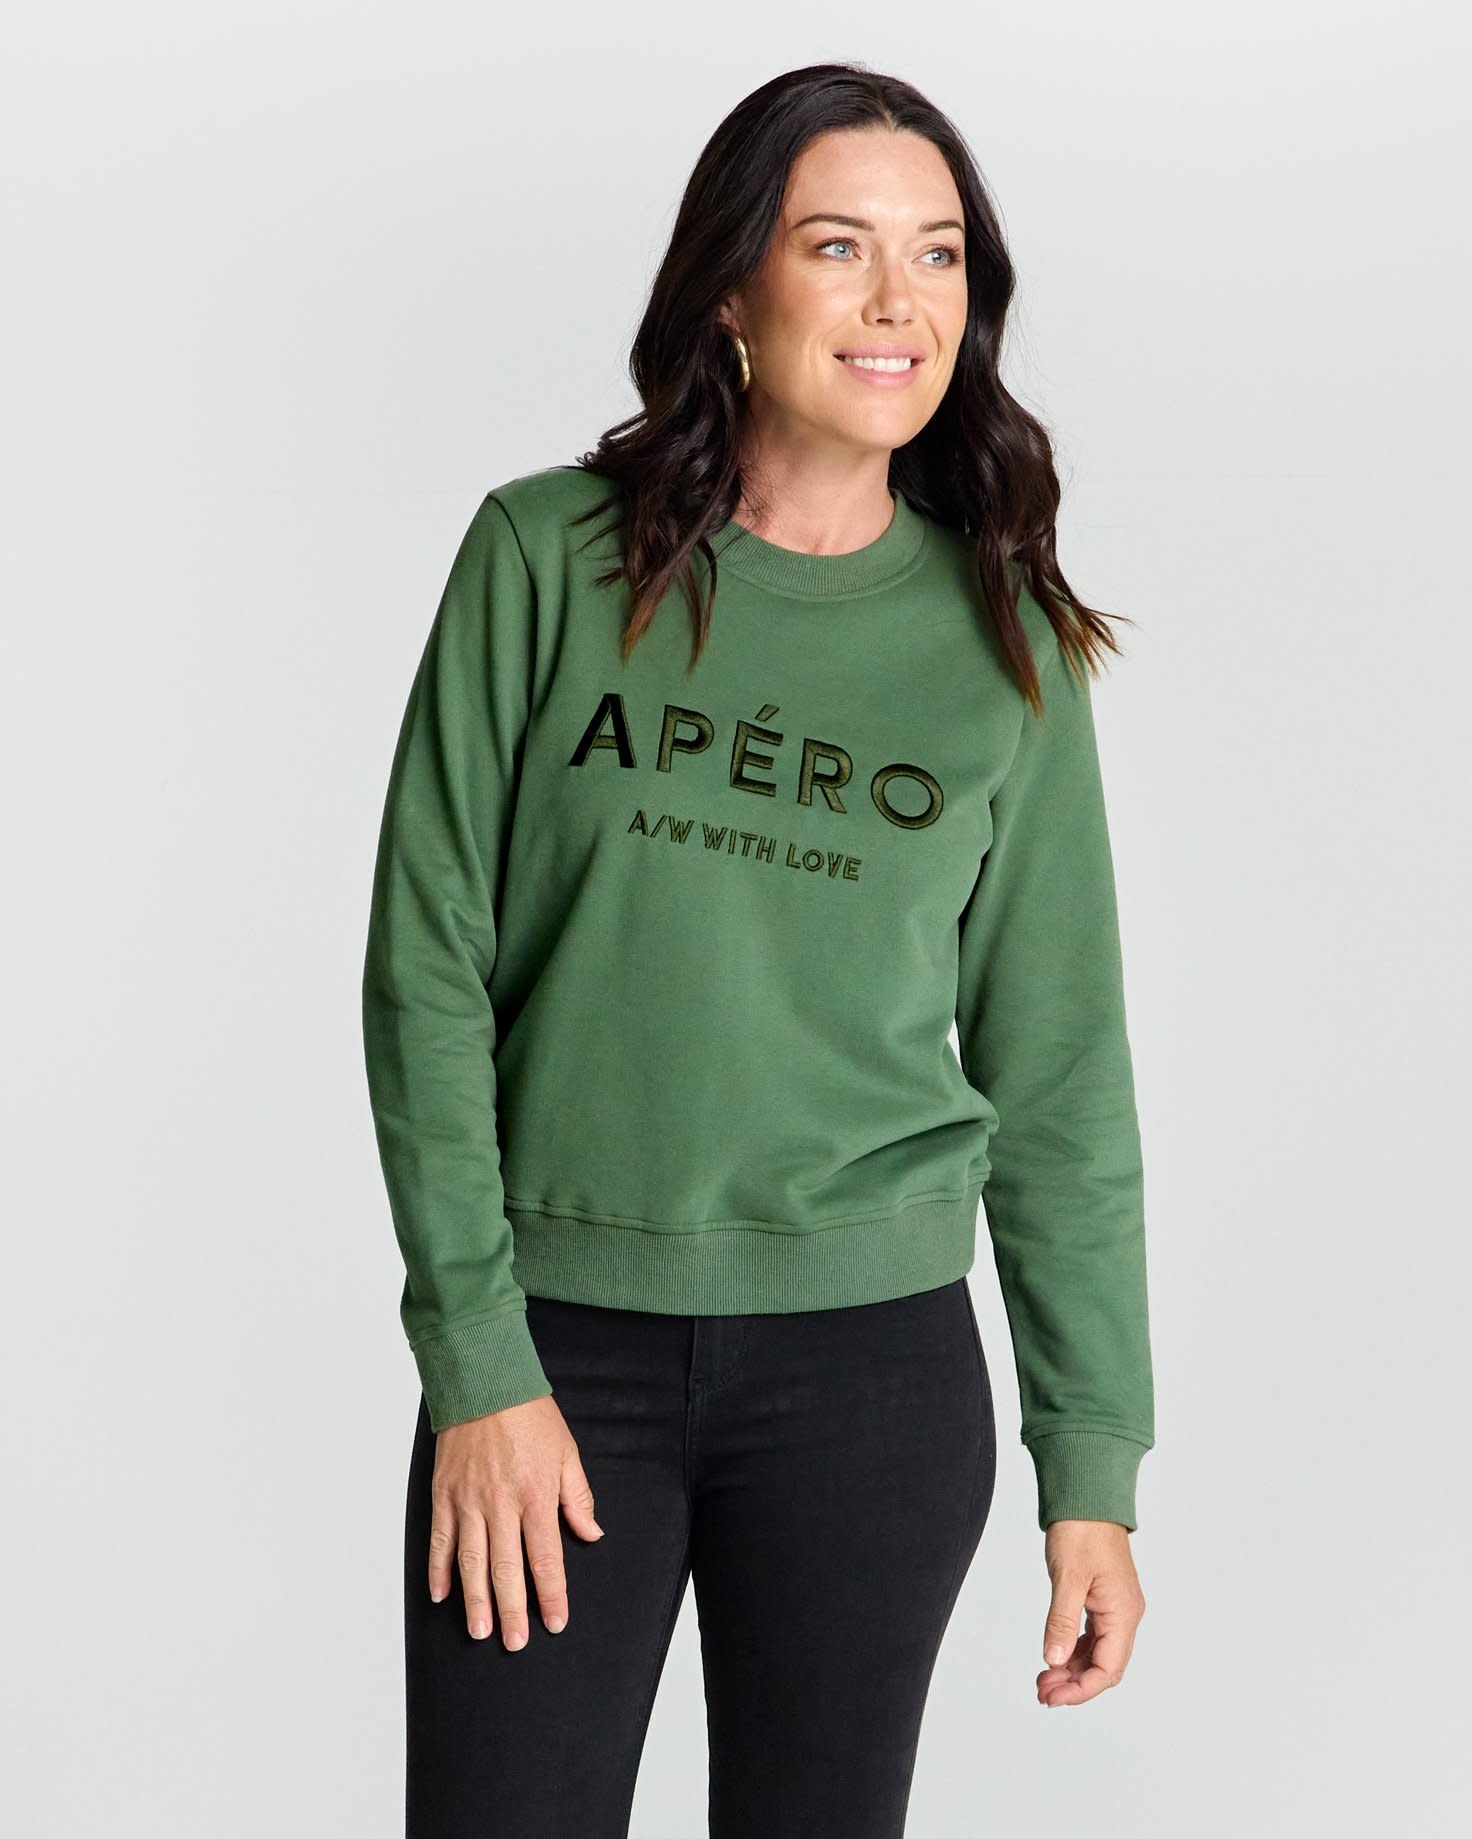 Apero AW with Love Embroidered Jumper Green